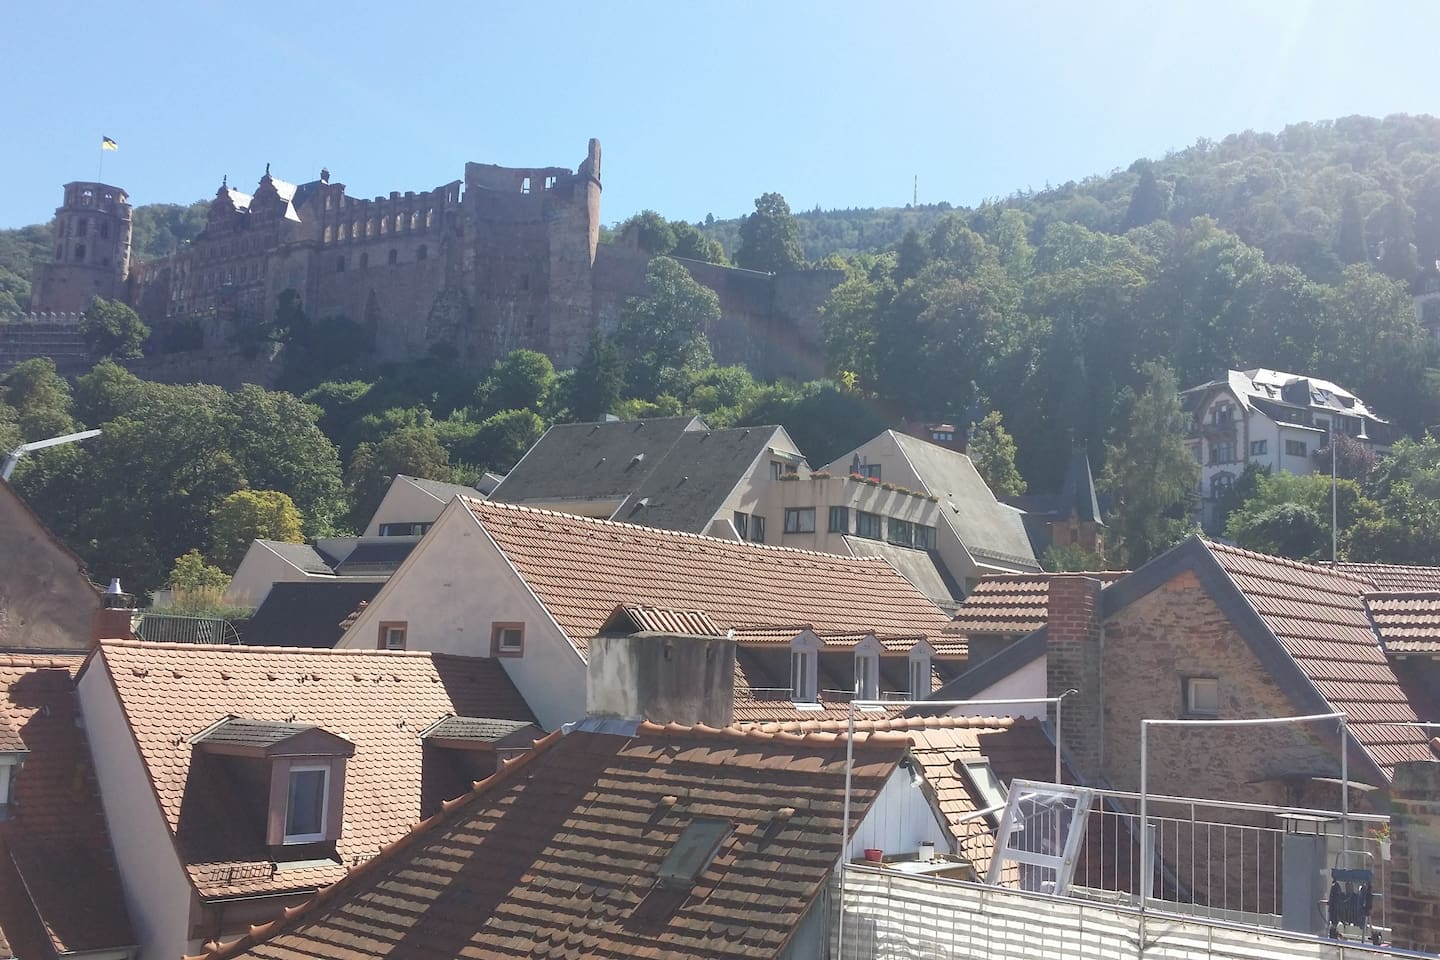 The castle, general pictures of Heidelberg (not viewed from the apartment...;)